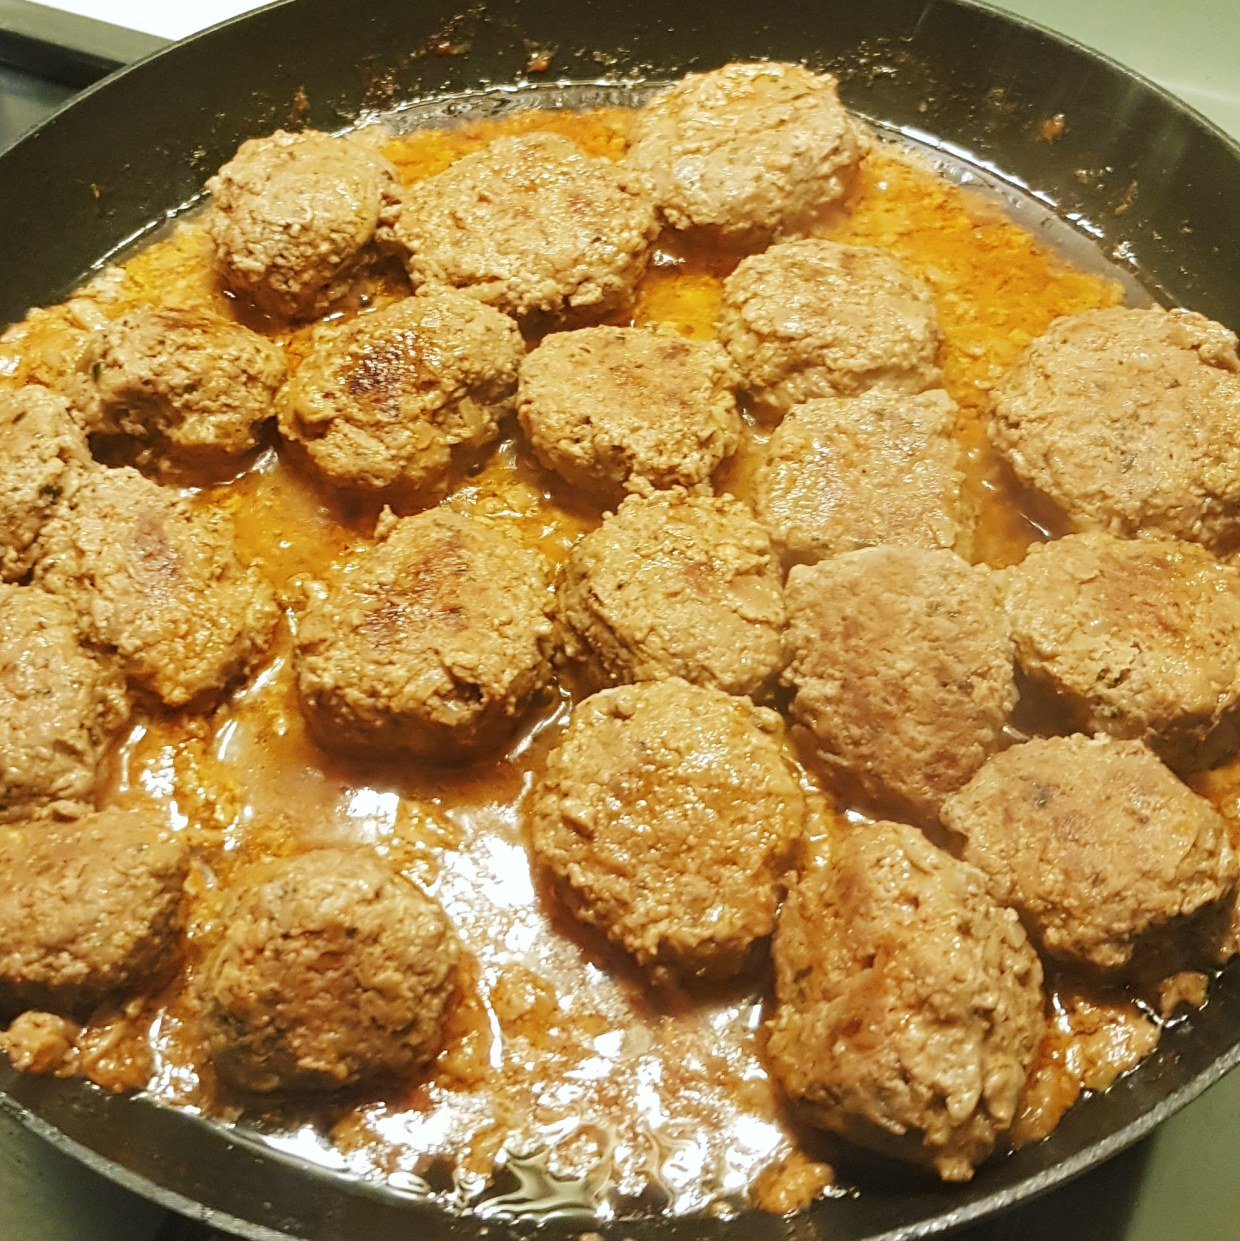 Delicious home-made no carb meatballs with no carbs.